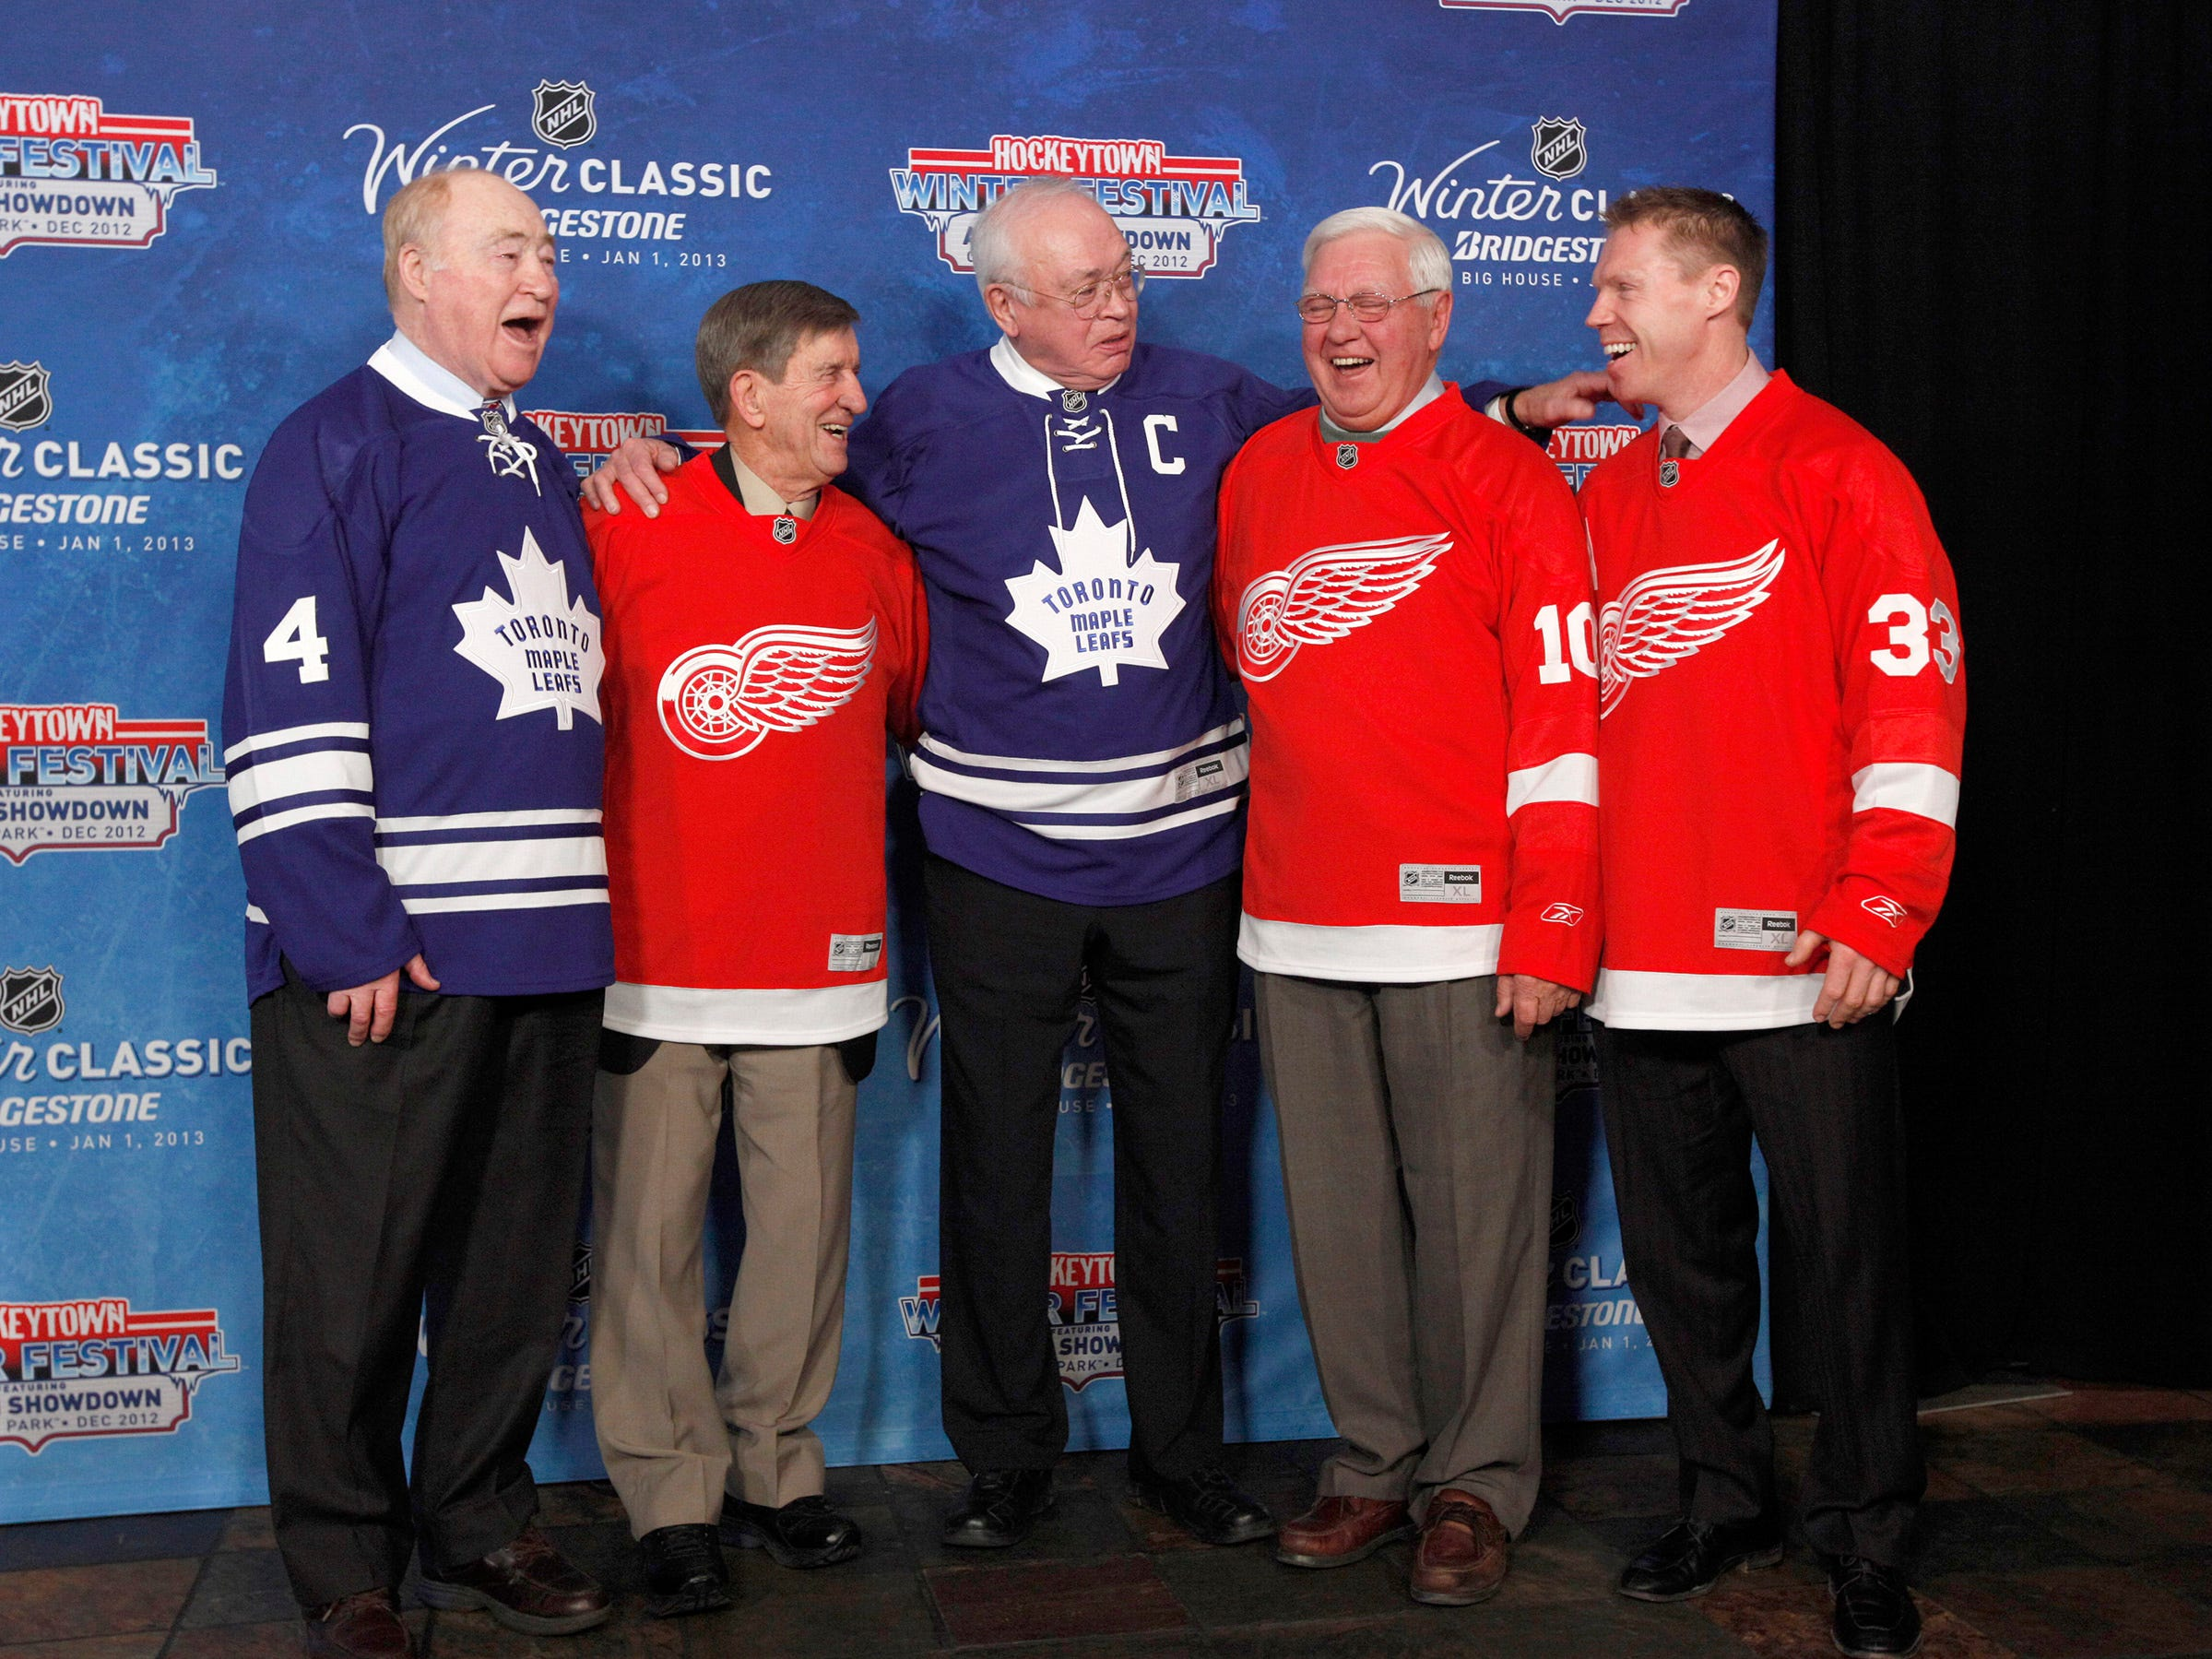 NHL alumni from left, Red Kelly, Ted Lindsay, George Armstrong, Alex Delvecchio, and Kris Draper during the announcement of the NHL Winter Classic hockey game at Comerica Park  in Detroit in February 2012. The Toronto Maple Leafs will play the Detroit Red Wings at Michigan Stadium in Ann Arbor on Jan. 1, 2013.